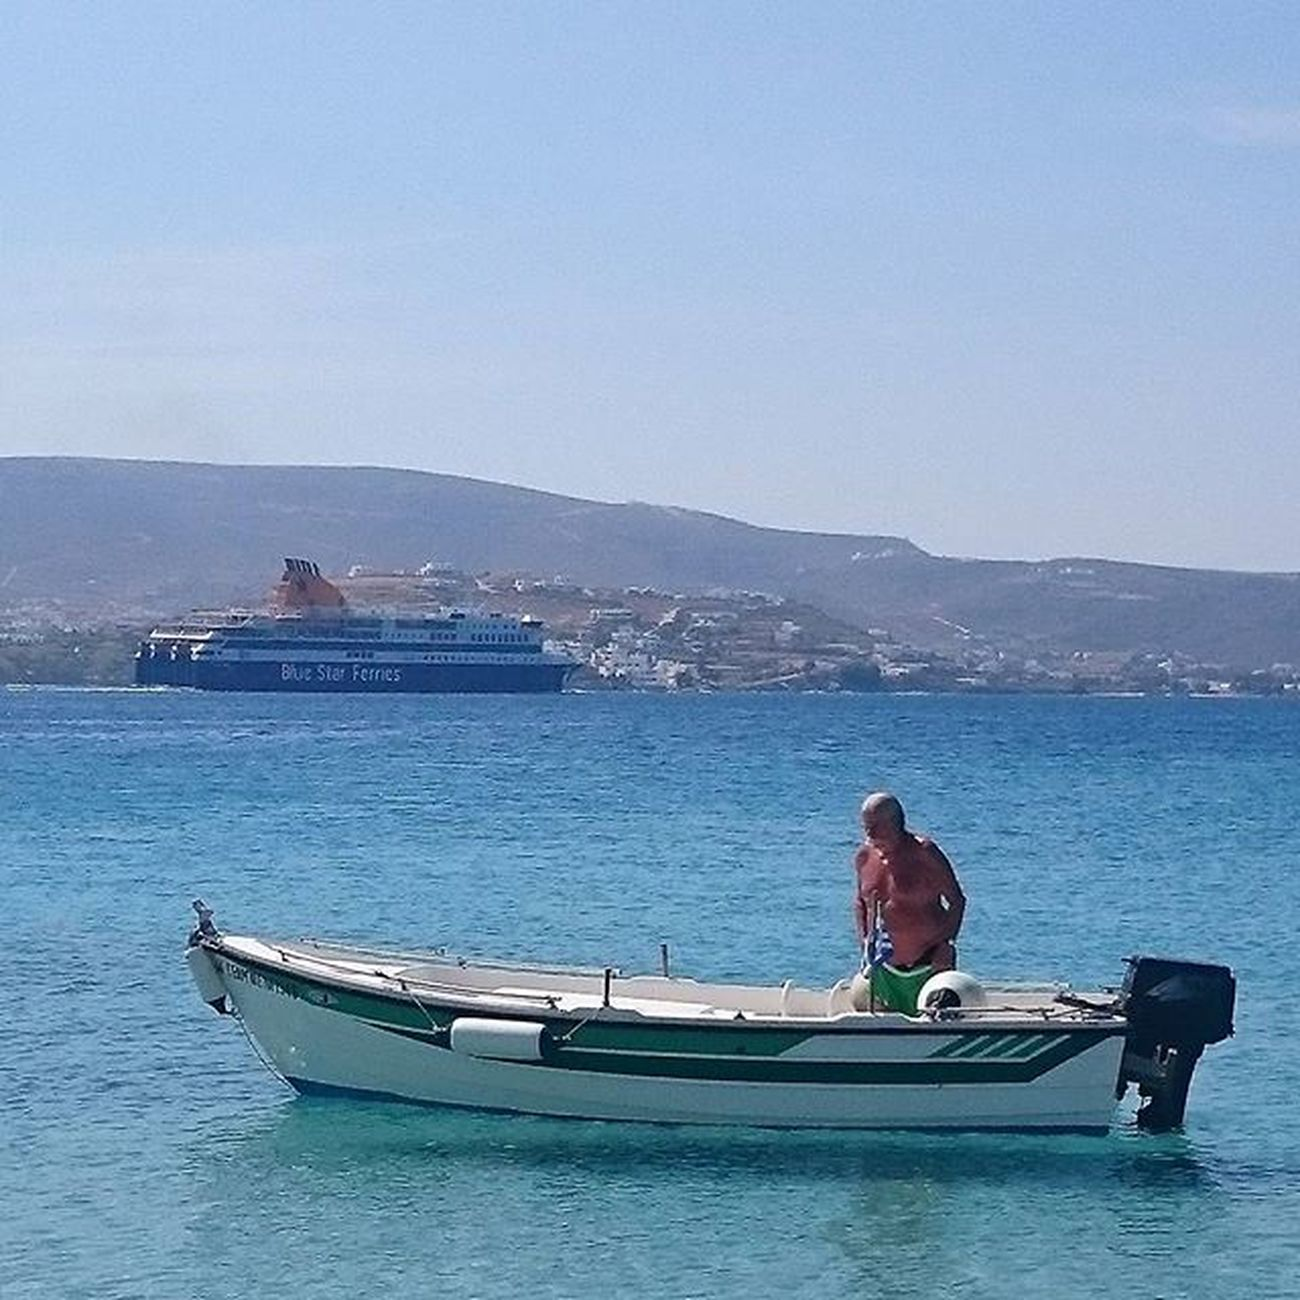 BIG BOAT. SMALL BOAT. KRIOS BEACH, PAROS. Krios Kriosbeach Parikia Greekislands Greece Greeceinstagram Paro Paros Parosiland Iloveparos Boat Boats Ferry Sea Seaescape Fish Fishing Enjoy Cyclades_islands Cyclades Blue Summer Sumneringreece Cyclades_islands Cyclades